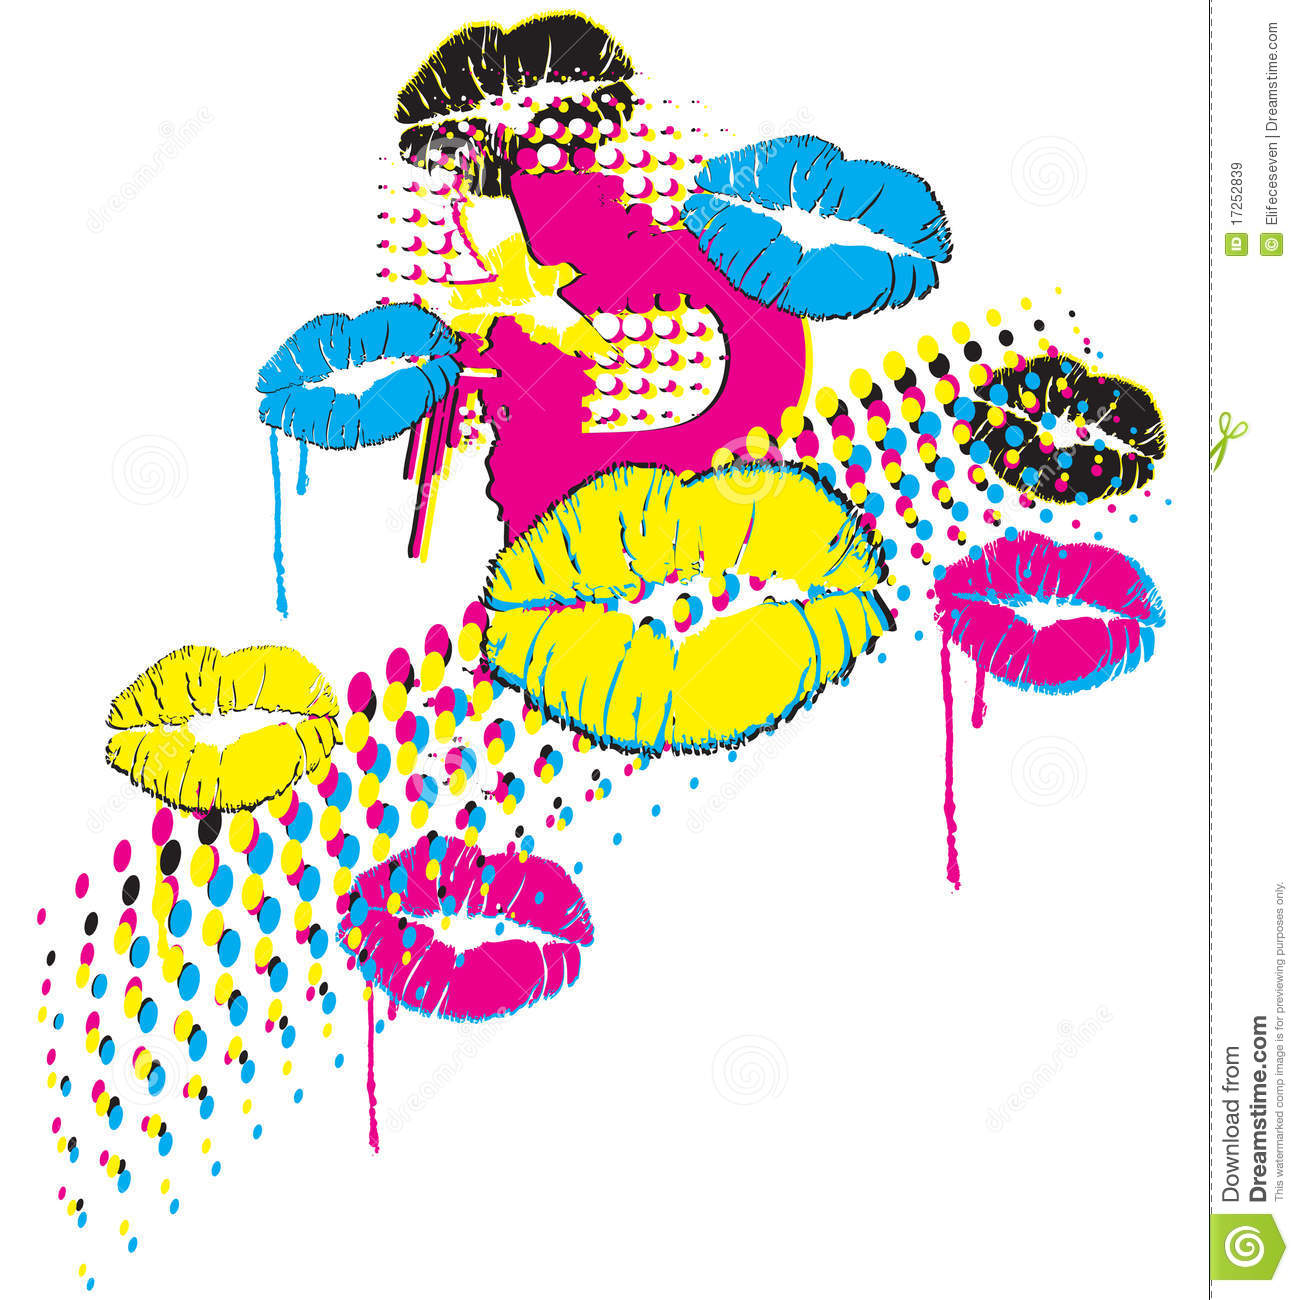 What Is Art And Design : Pop art design royalty free stock images image